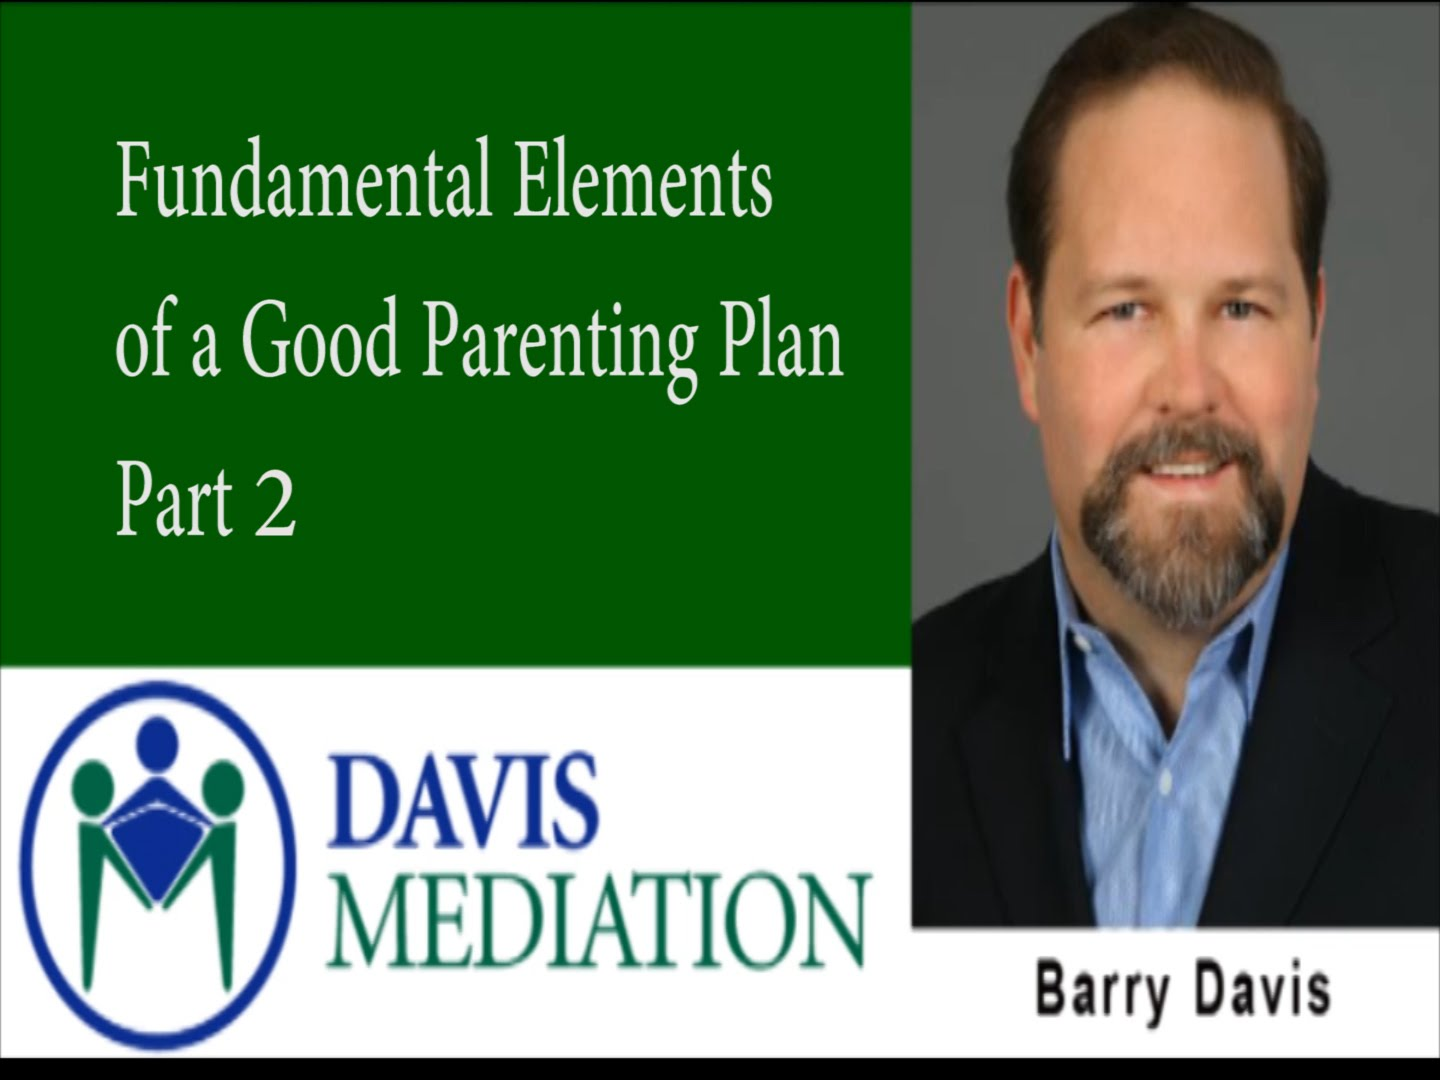 Fundamental-Elements-of-a-Good-Parenting-Plan-Pt.-2